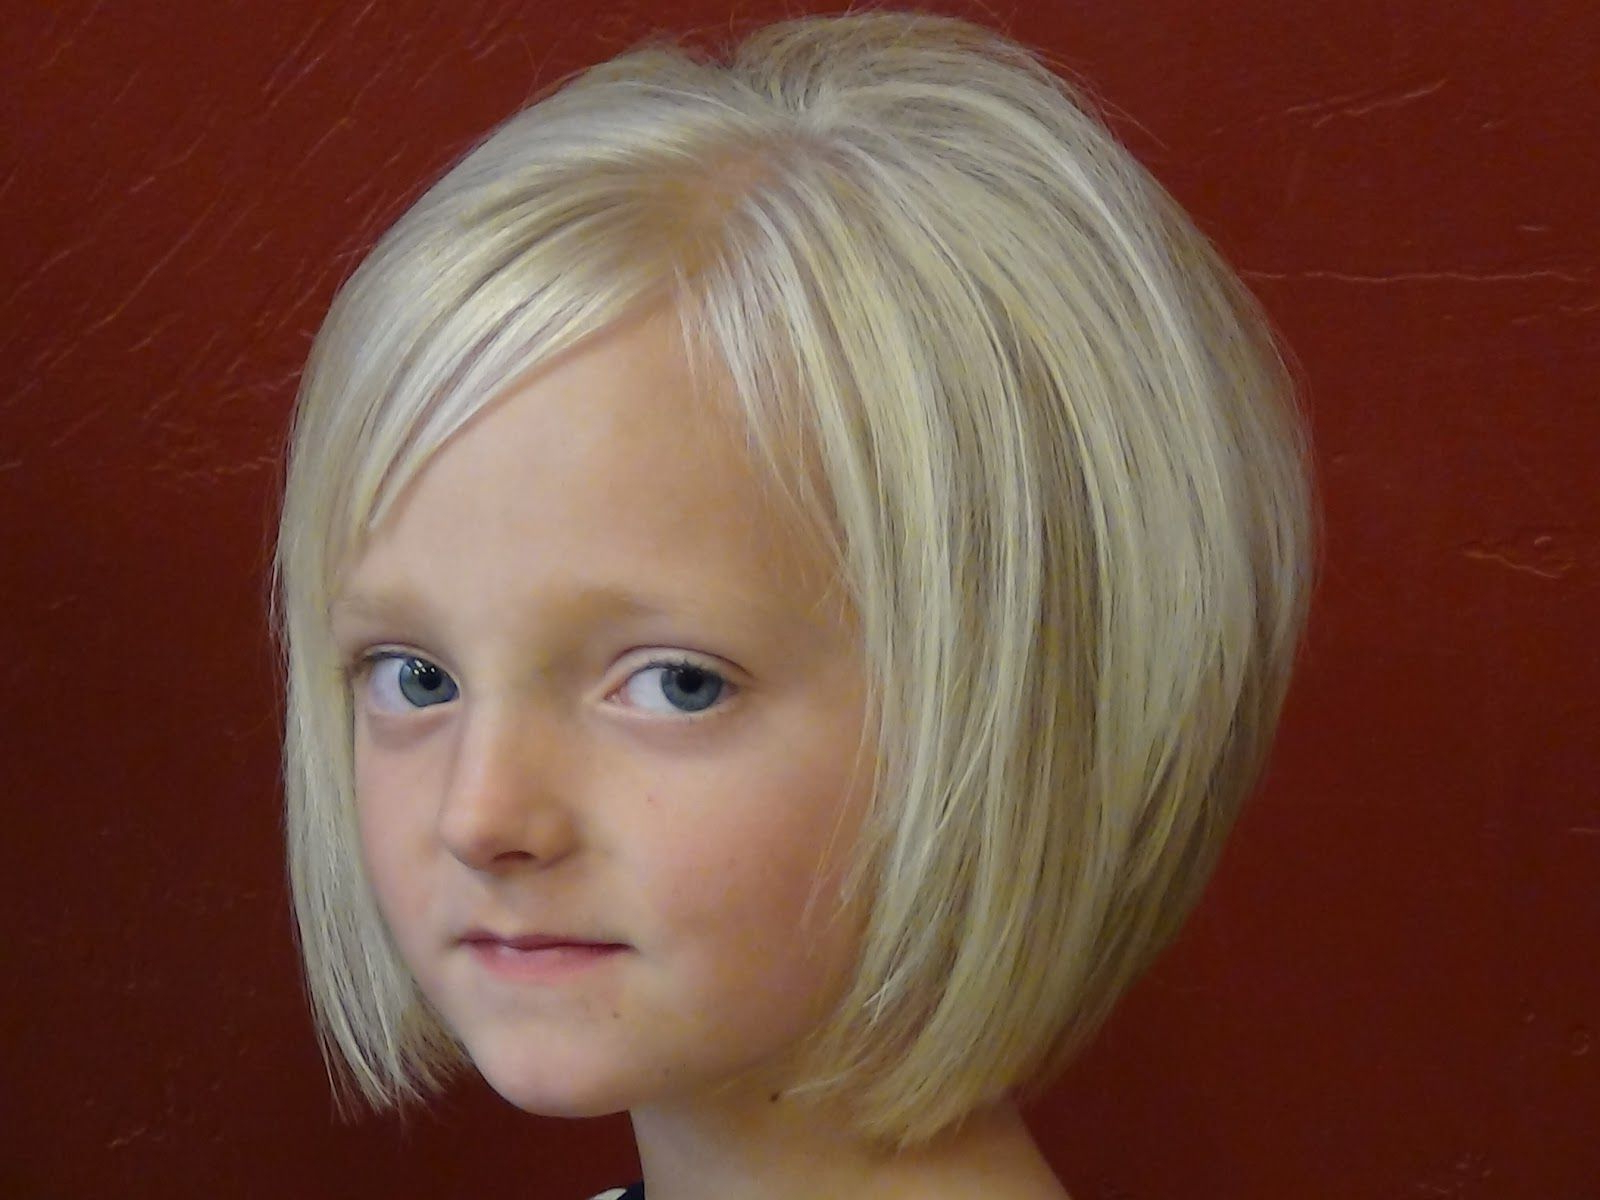 Little Girls Short Haircuts For Thick Hair – Short Hairstyles With Throughout Little Girl Short Hairstyles Pictures (View 24 of 25)